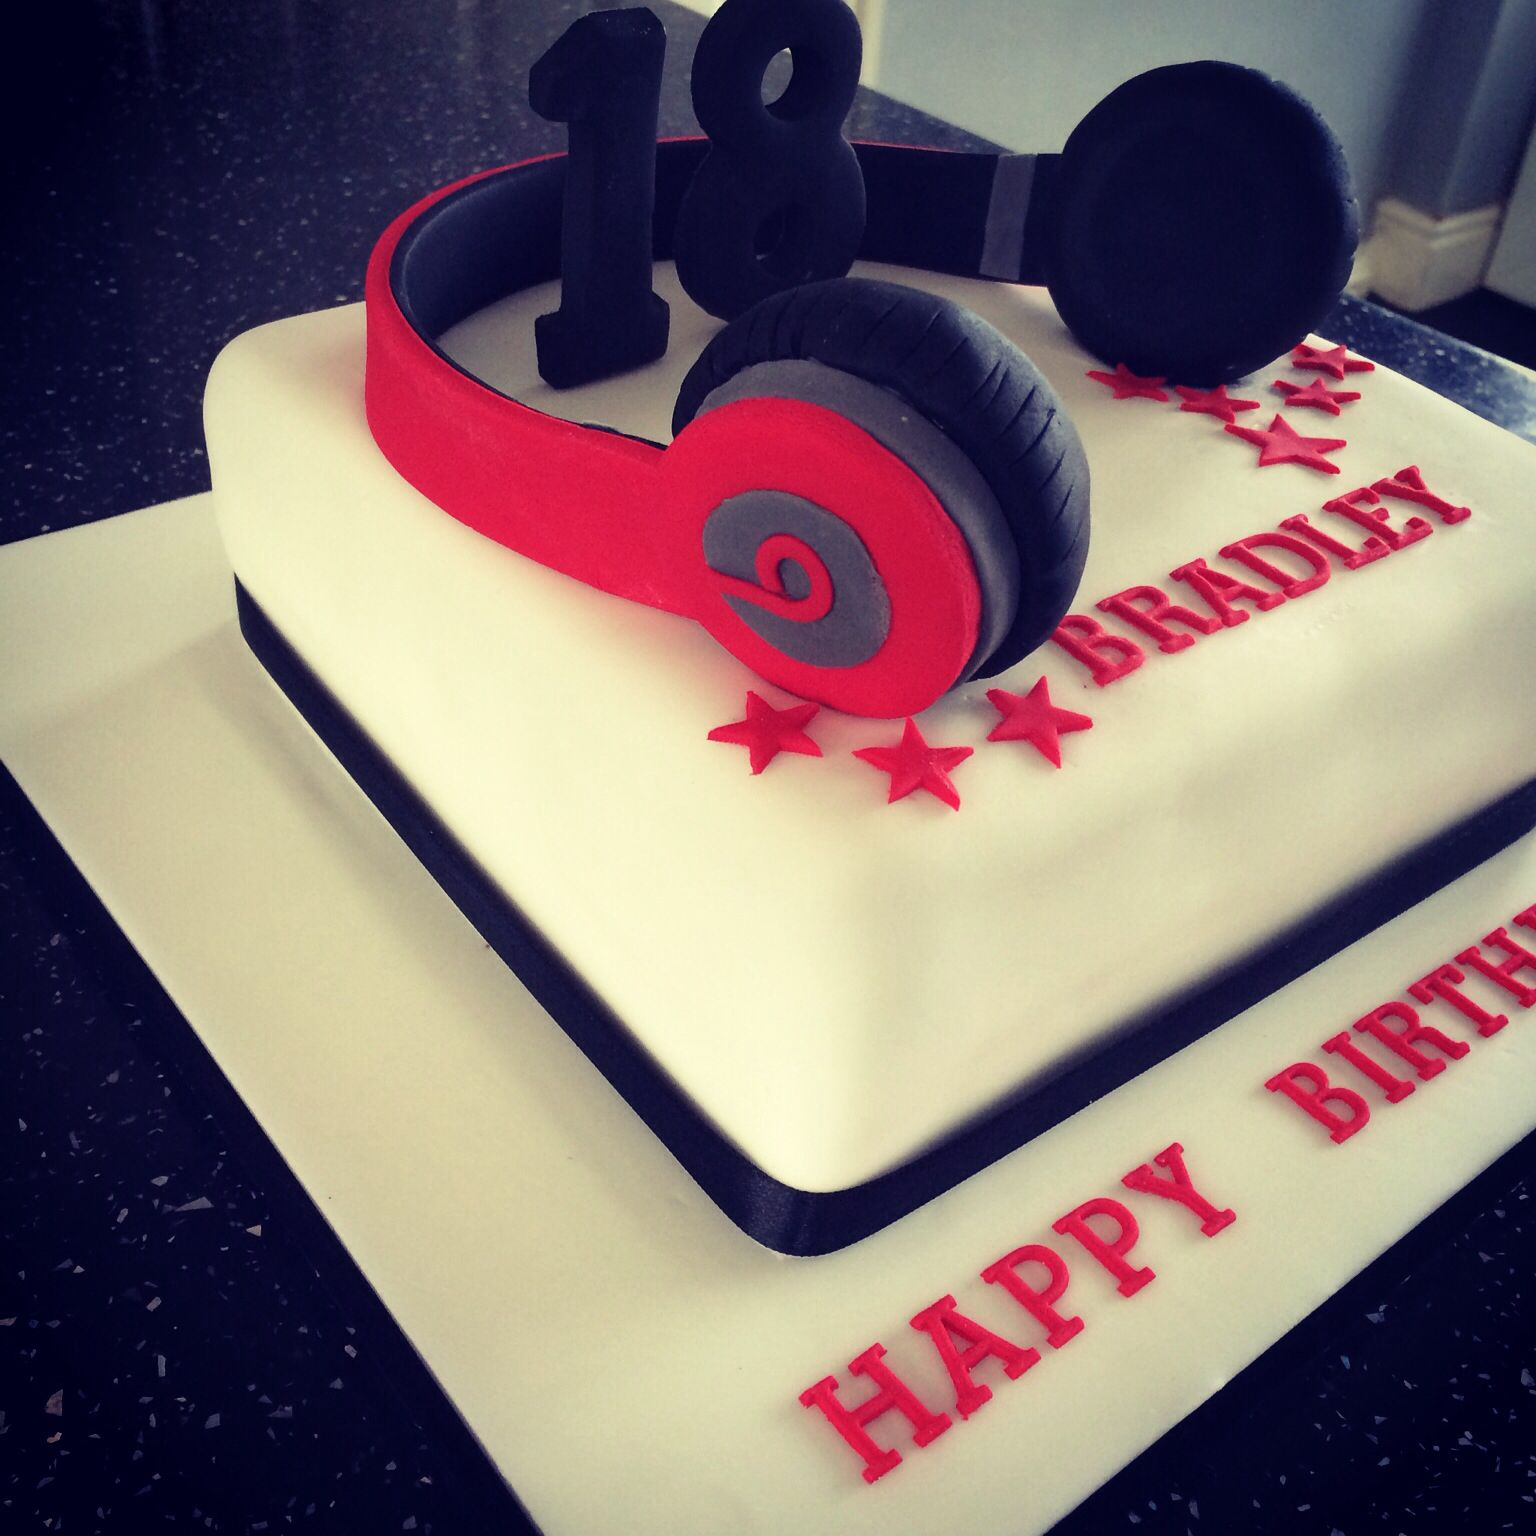 Admirable 8 Square Chocolate Cake With Dr Dre Beats Headphones Boys 18Th Personalised Birthday Cards Paralily Jamesorg